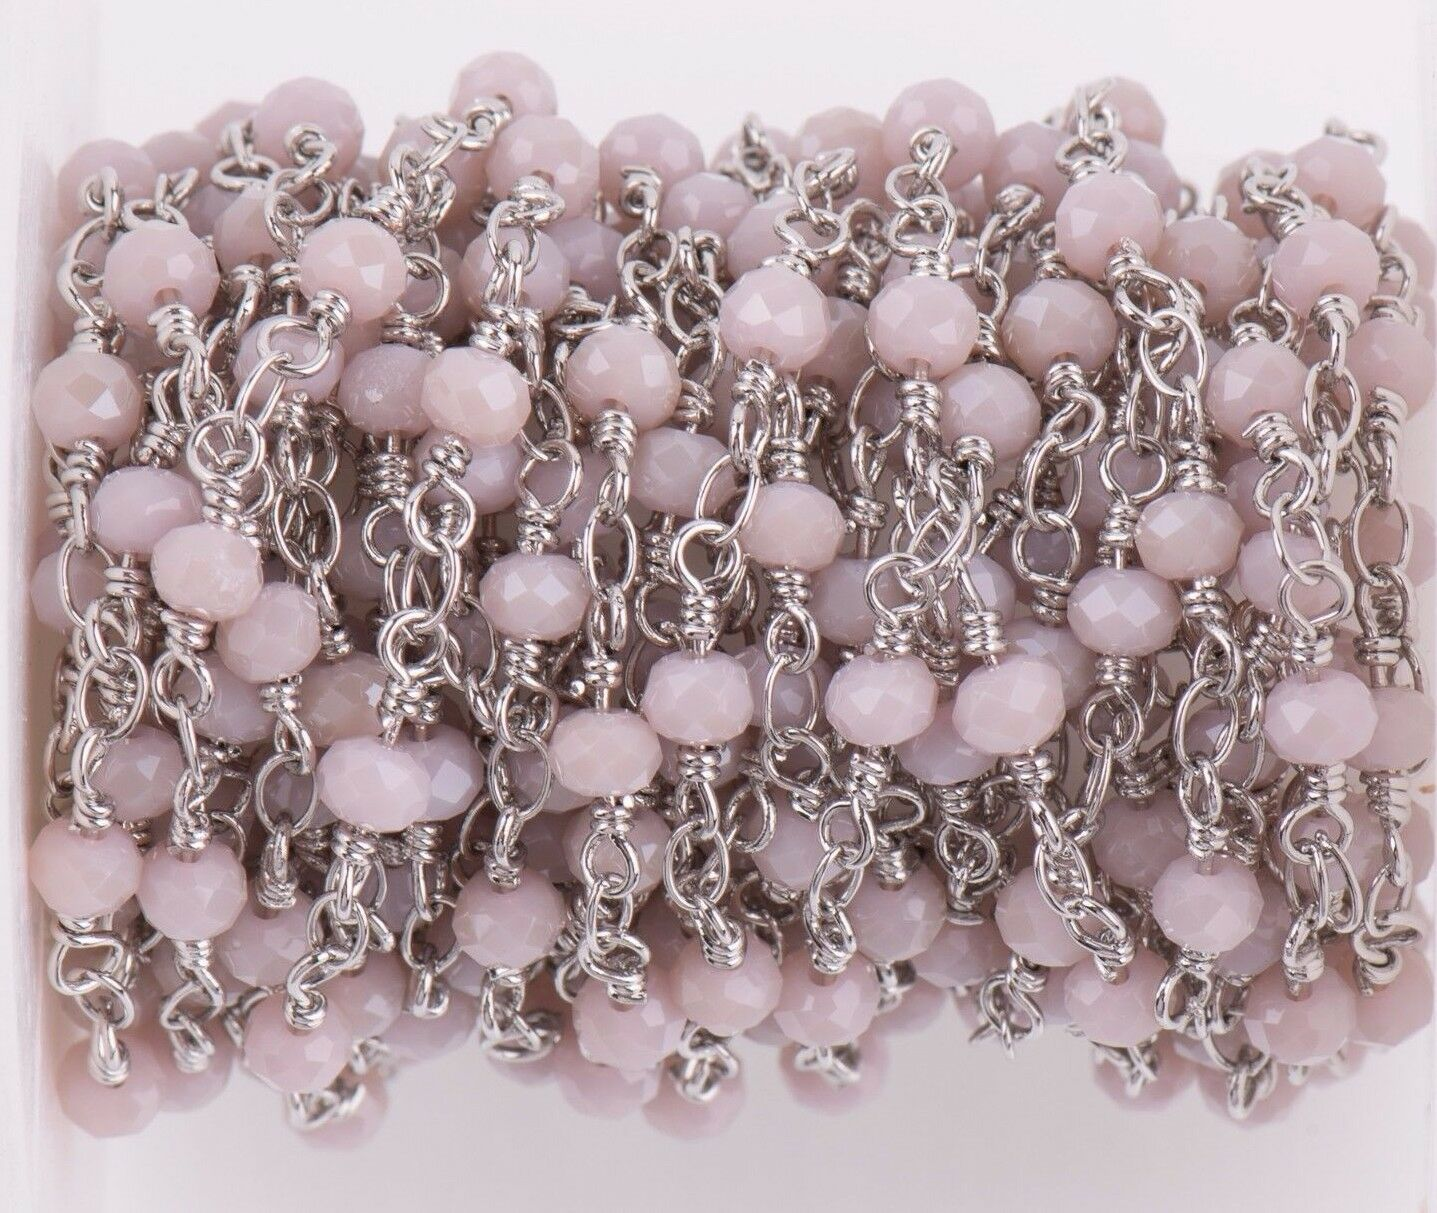 5 Yd Blush Crystal Rosary Bead Chain, Silver Double Wrap,...